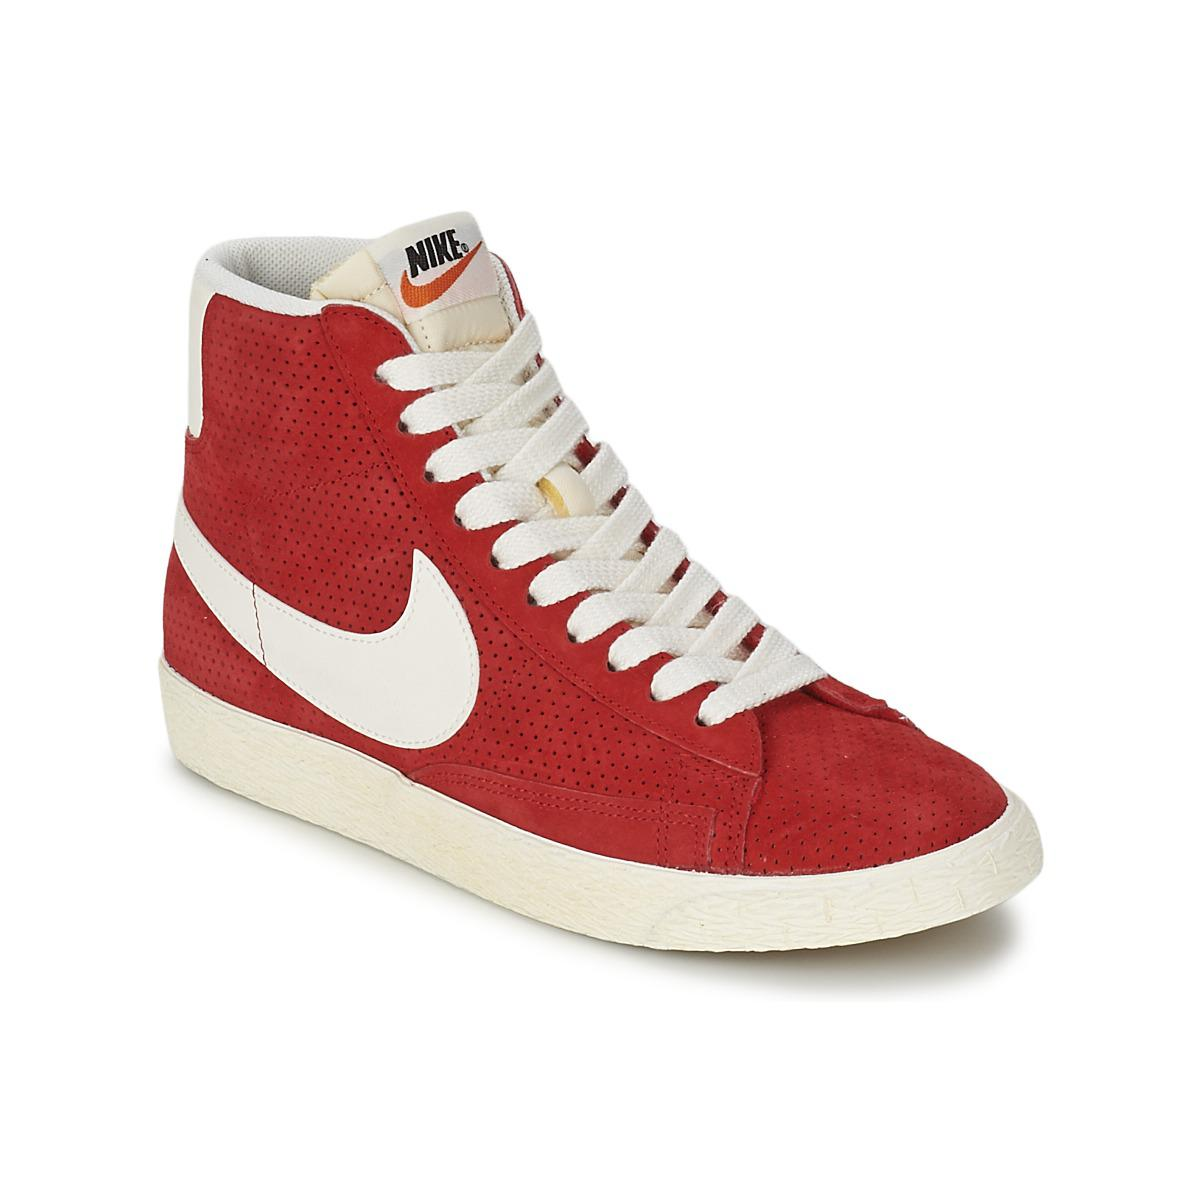 89c6100653b31 ... cheap nike blazer mid suede vintage womens shoes high top trainers in  6196a a33d3